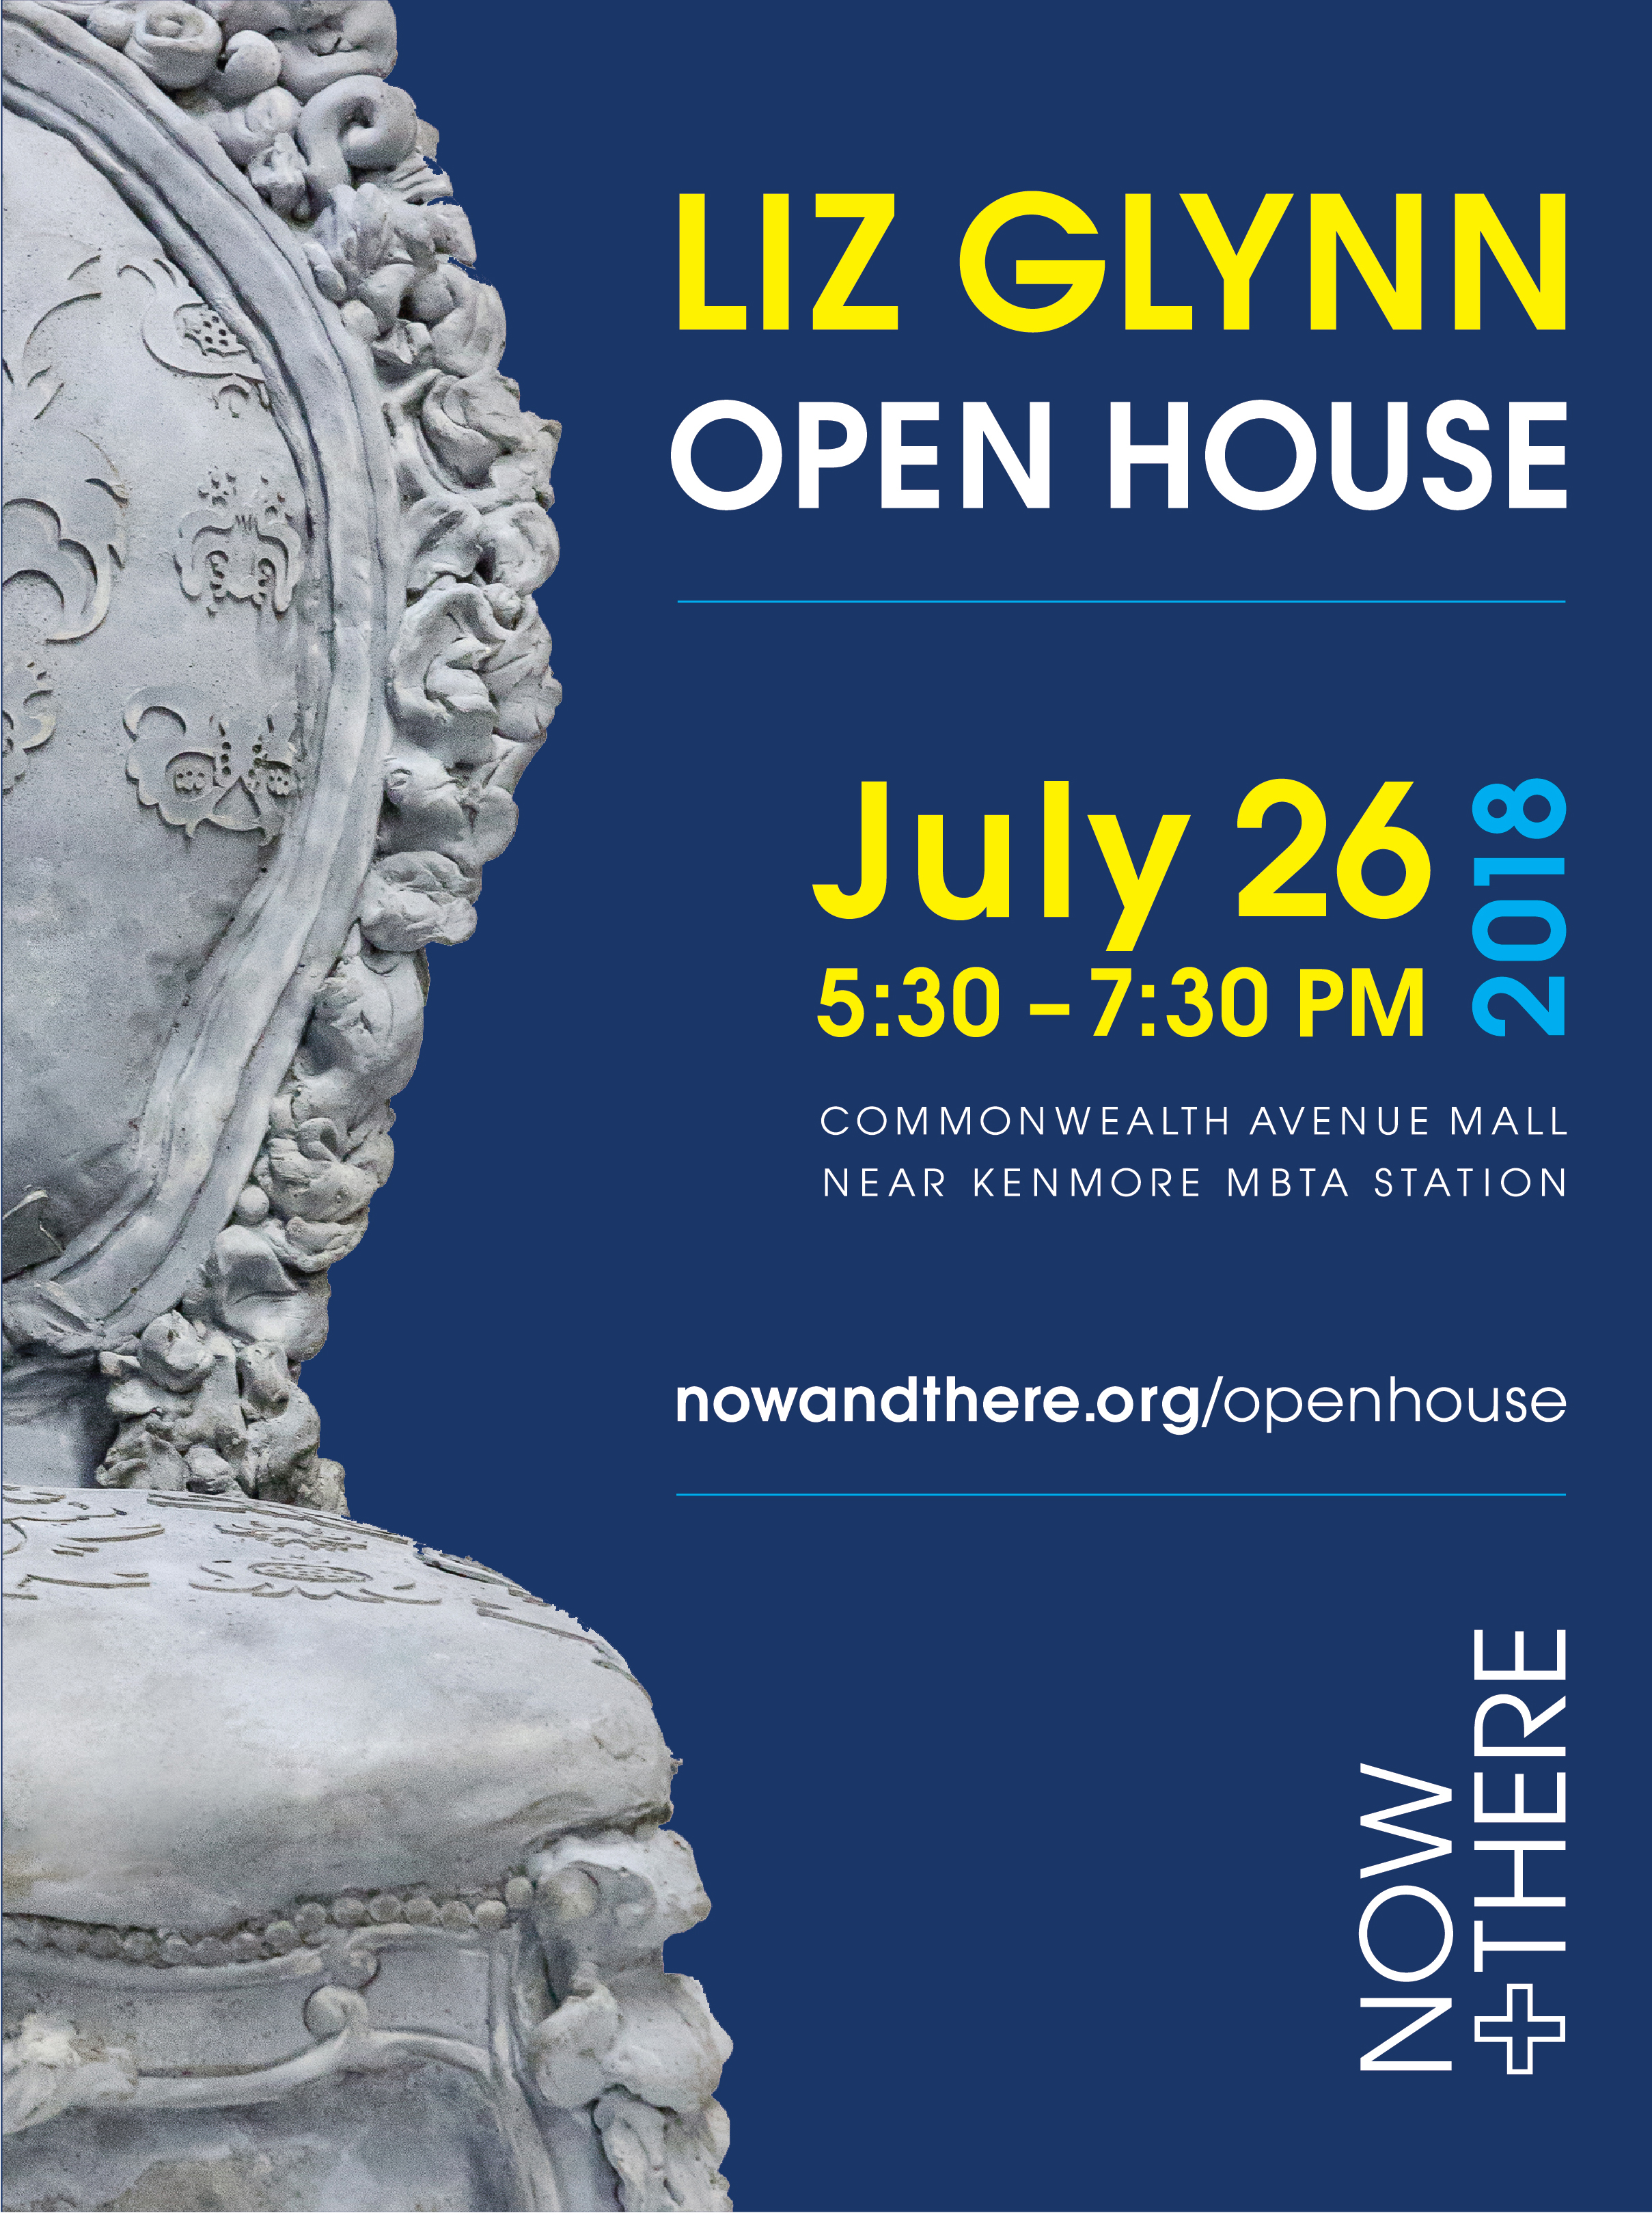 You're invited to Liz Glynn: Open House